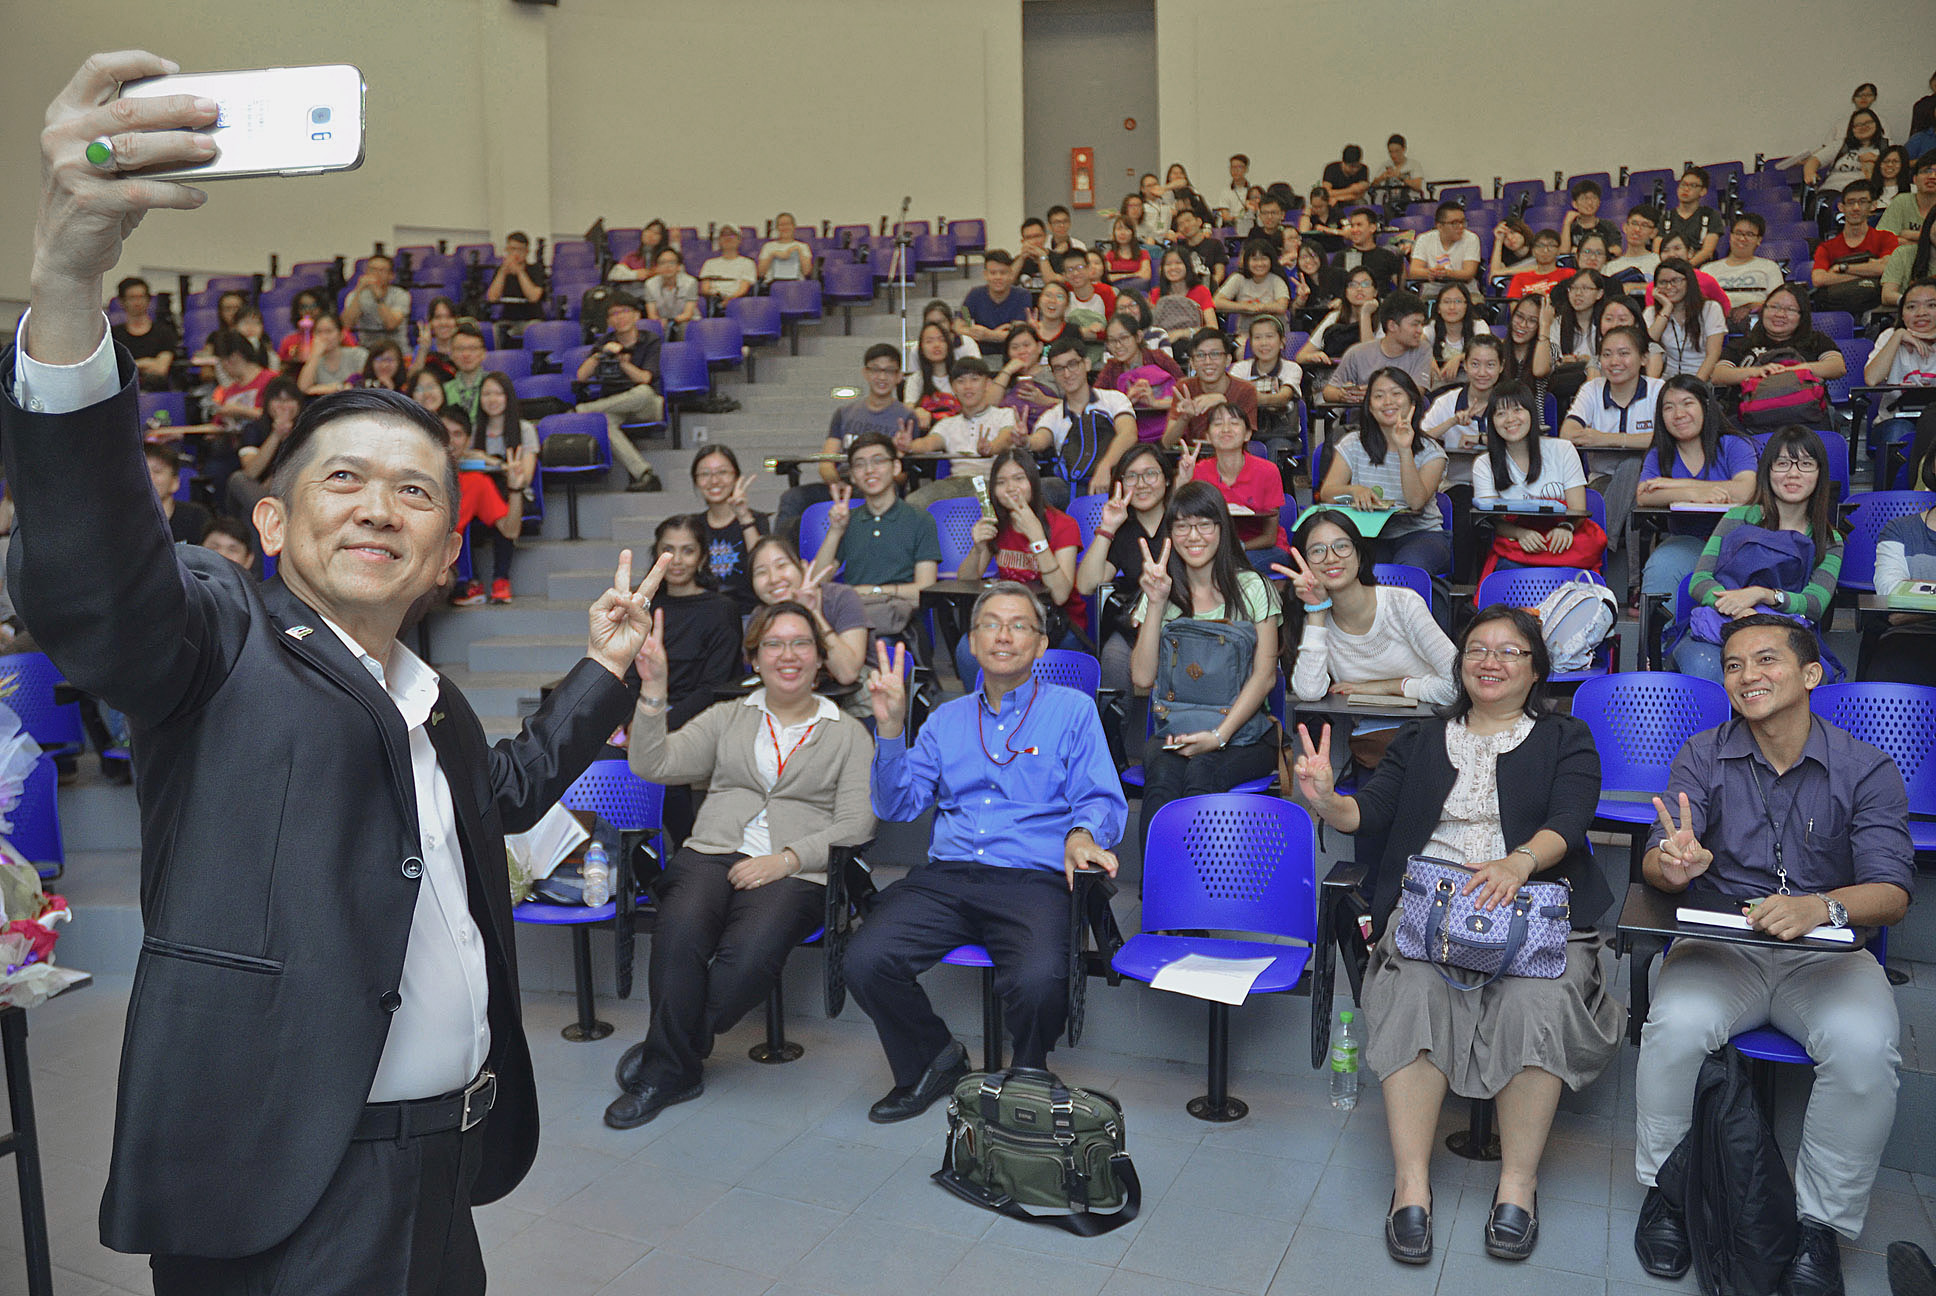 Sporting Datuk Seri Kwok taking a wefie with staff and participants